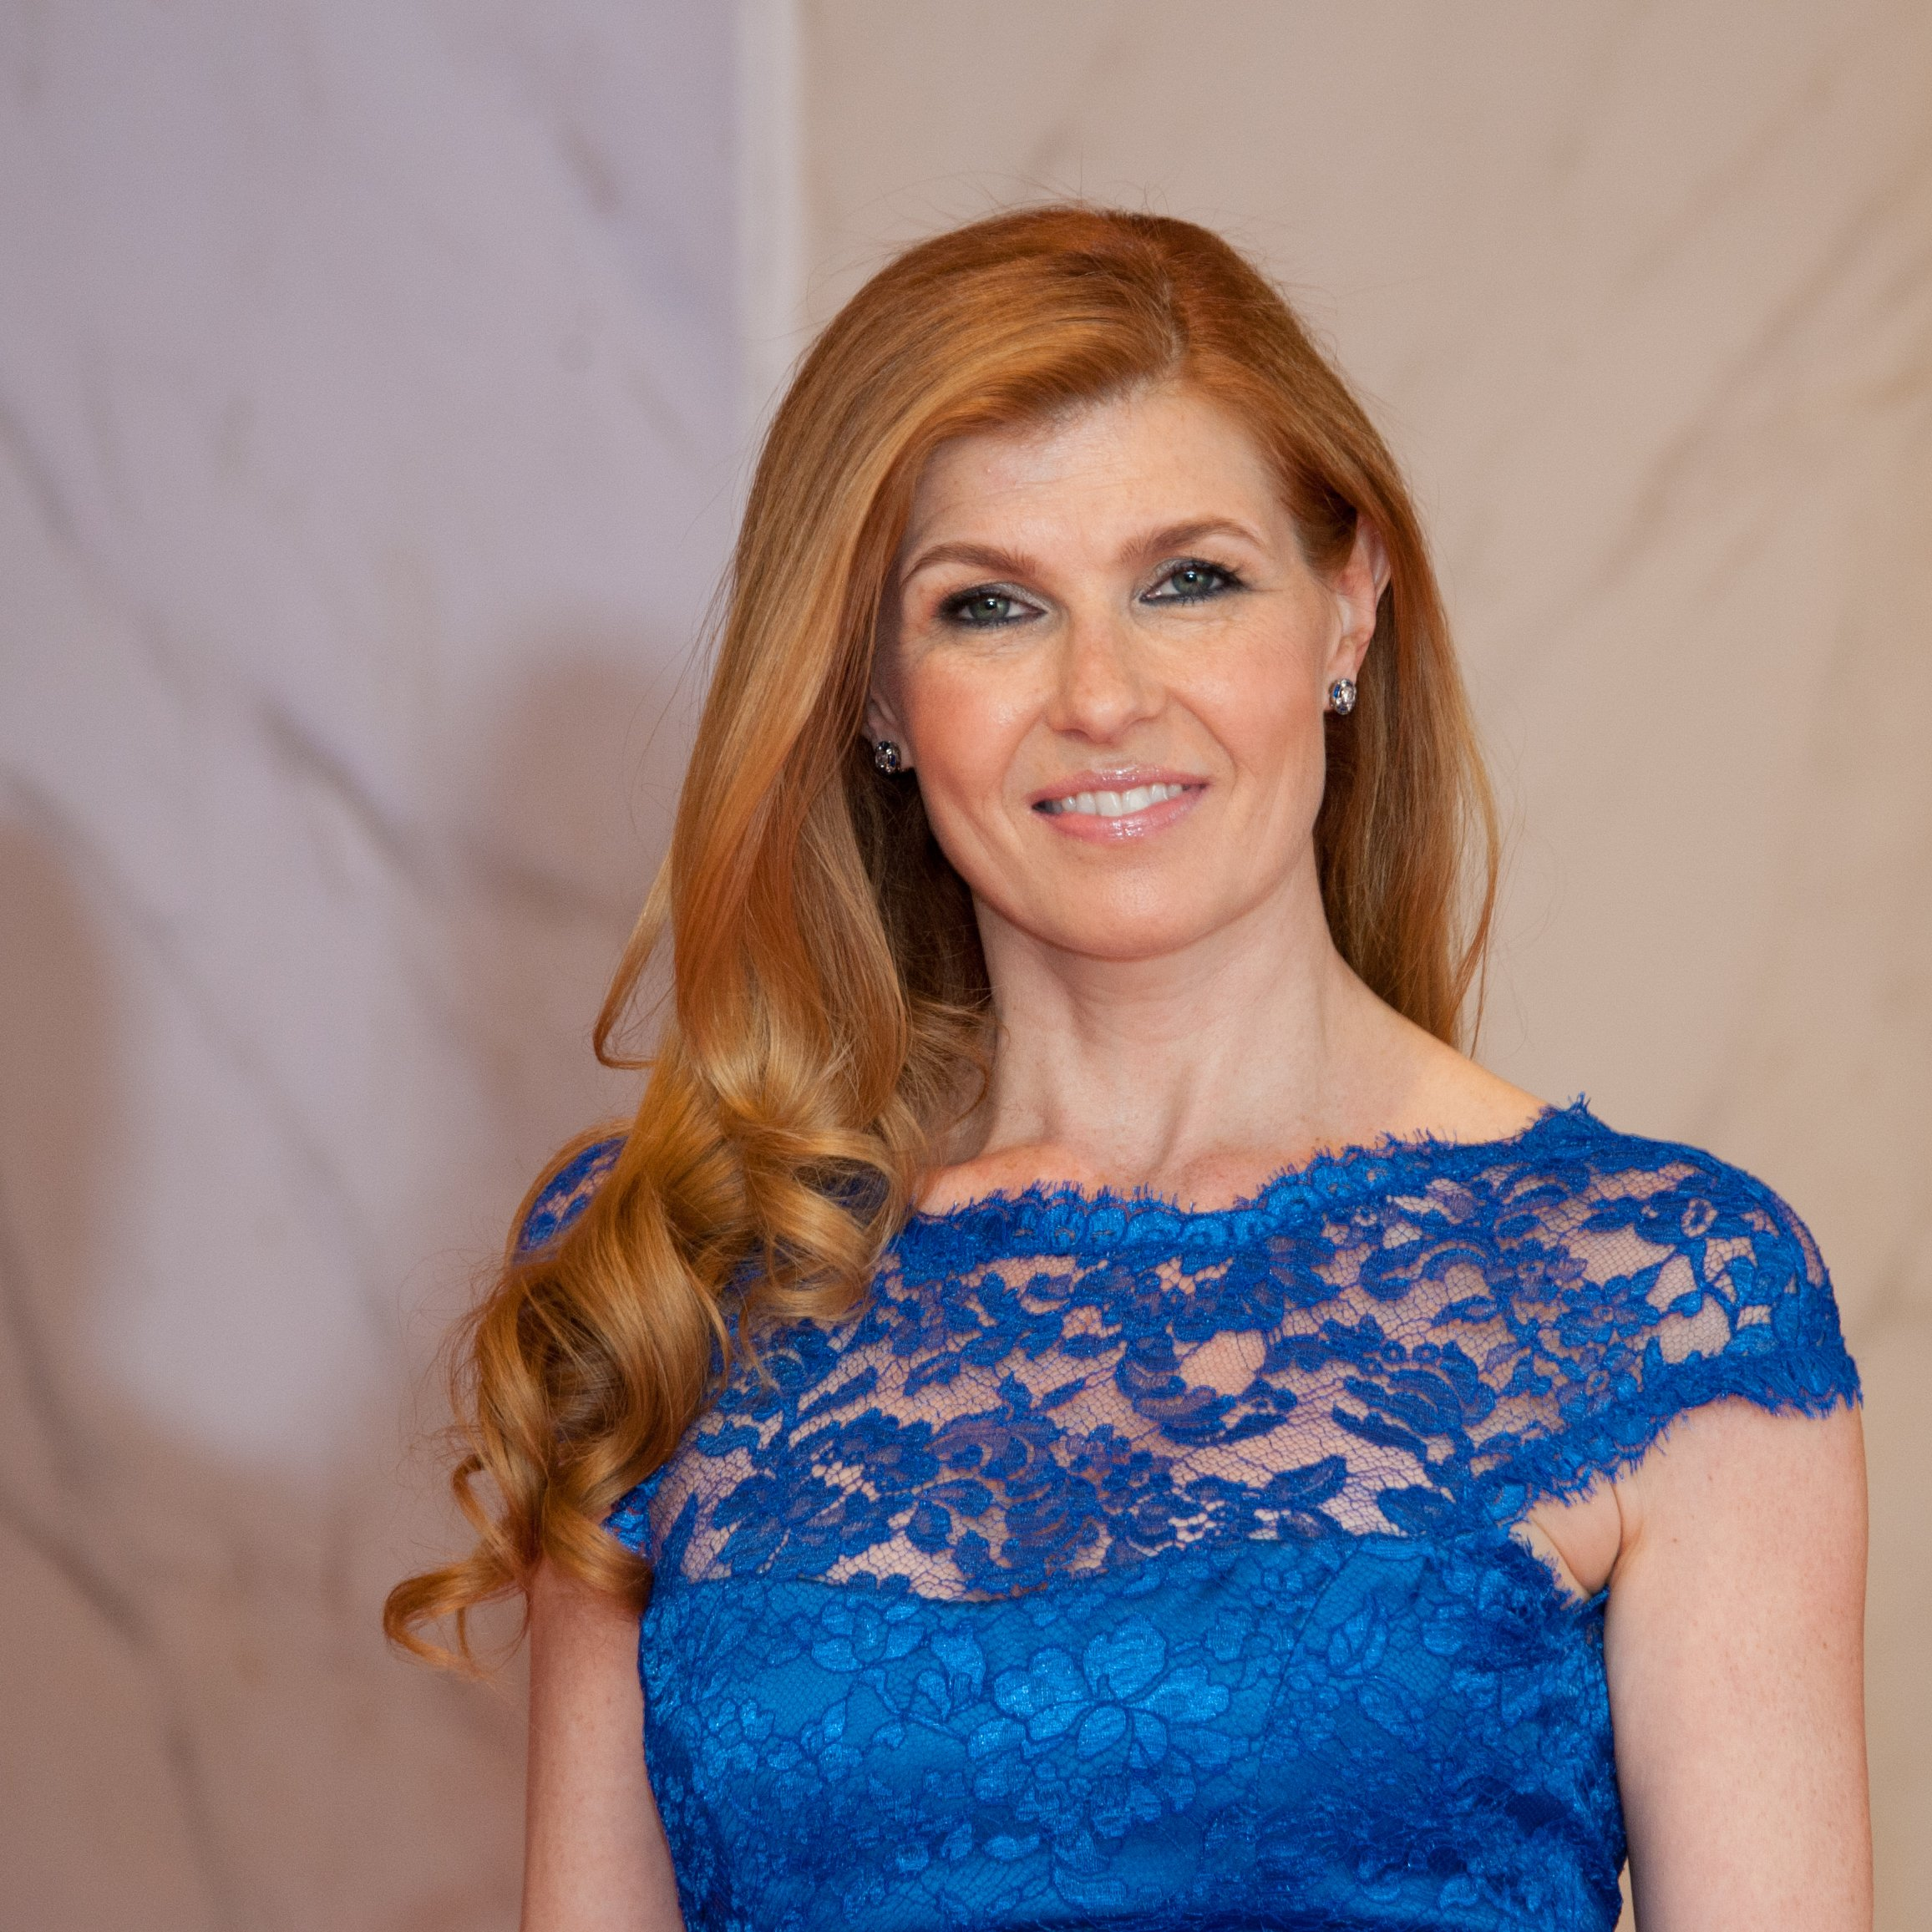 Connie Britton arrives at the White House Correspondents Dinner on April 27, 2013. | Photo: Shutterstock.